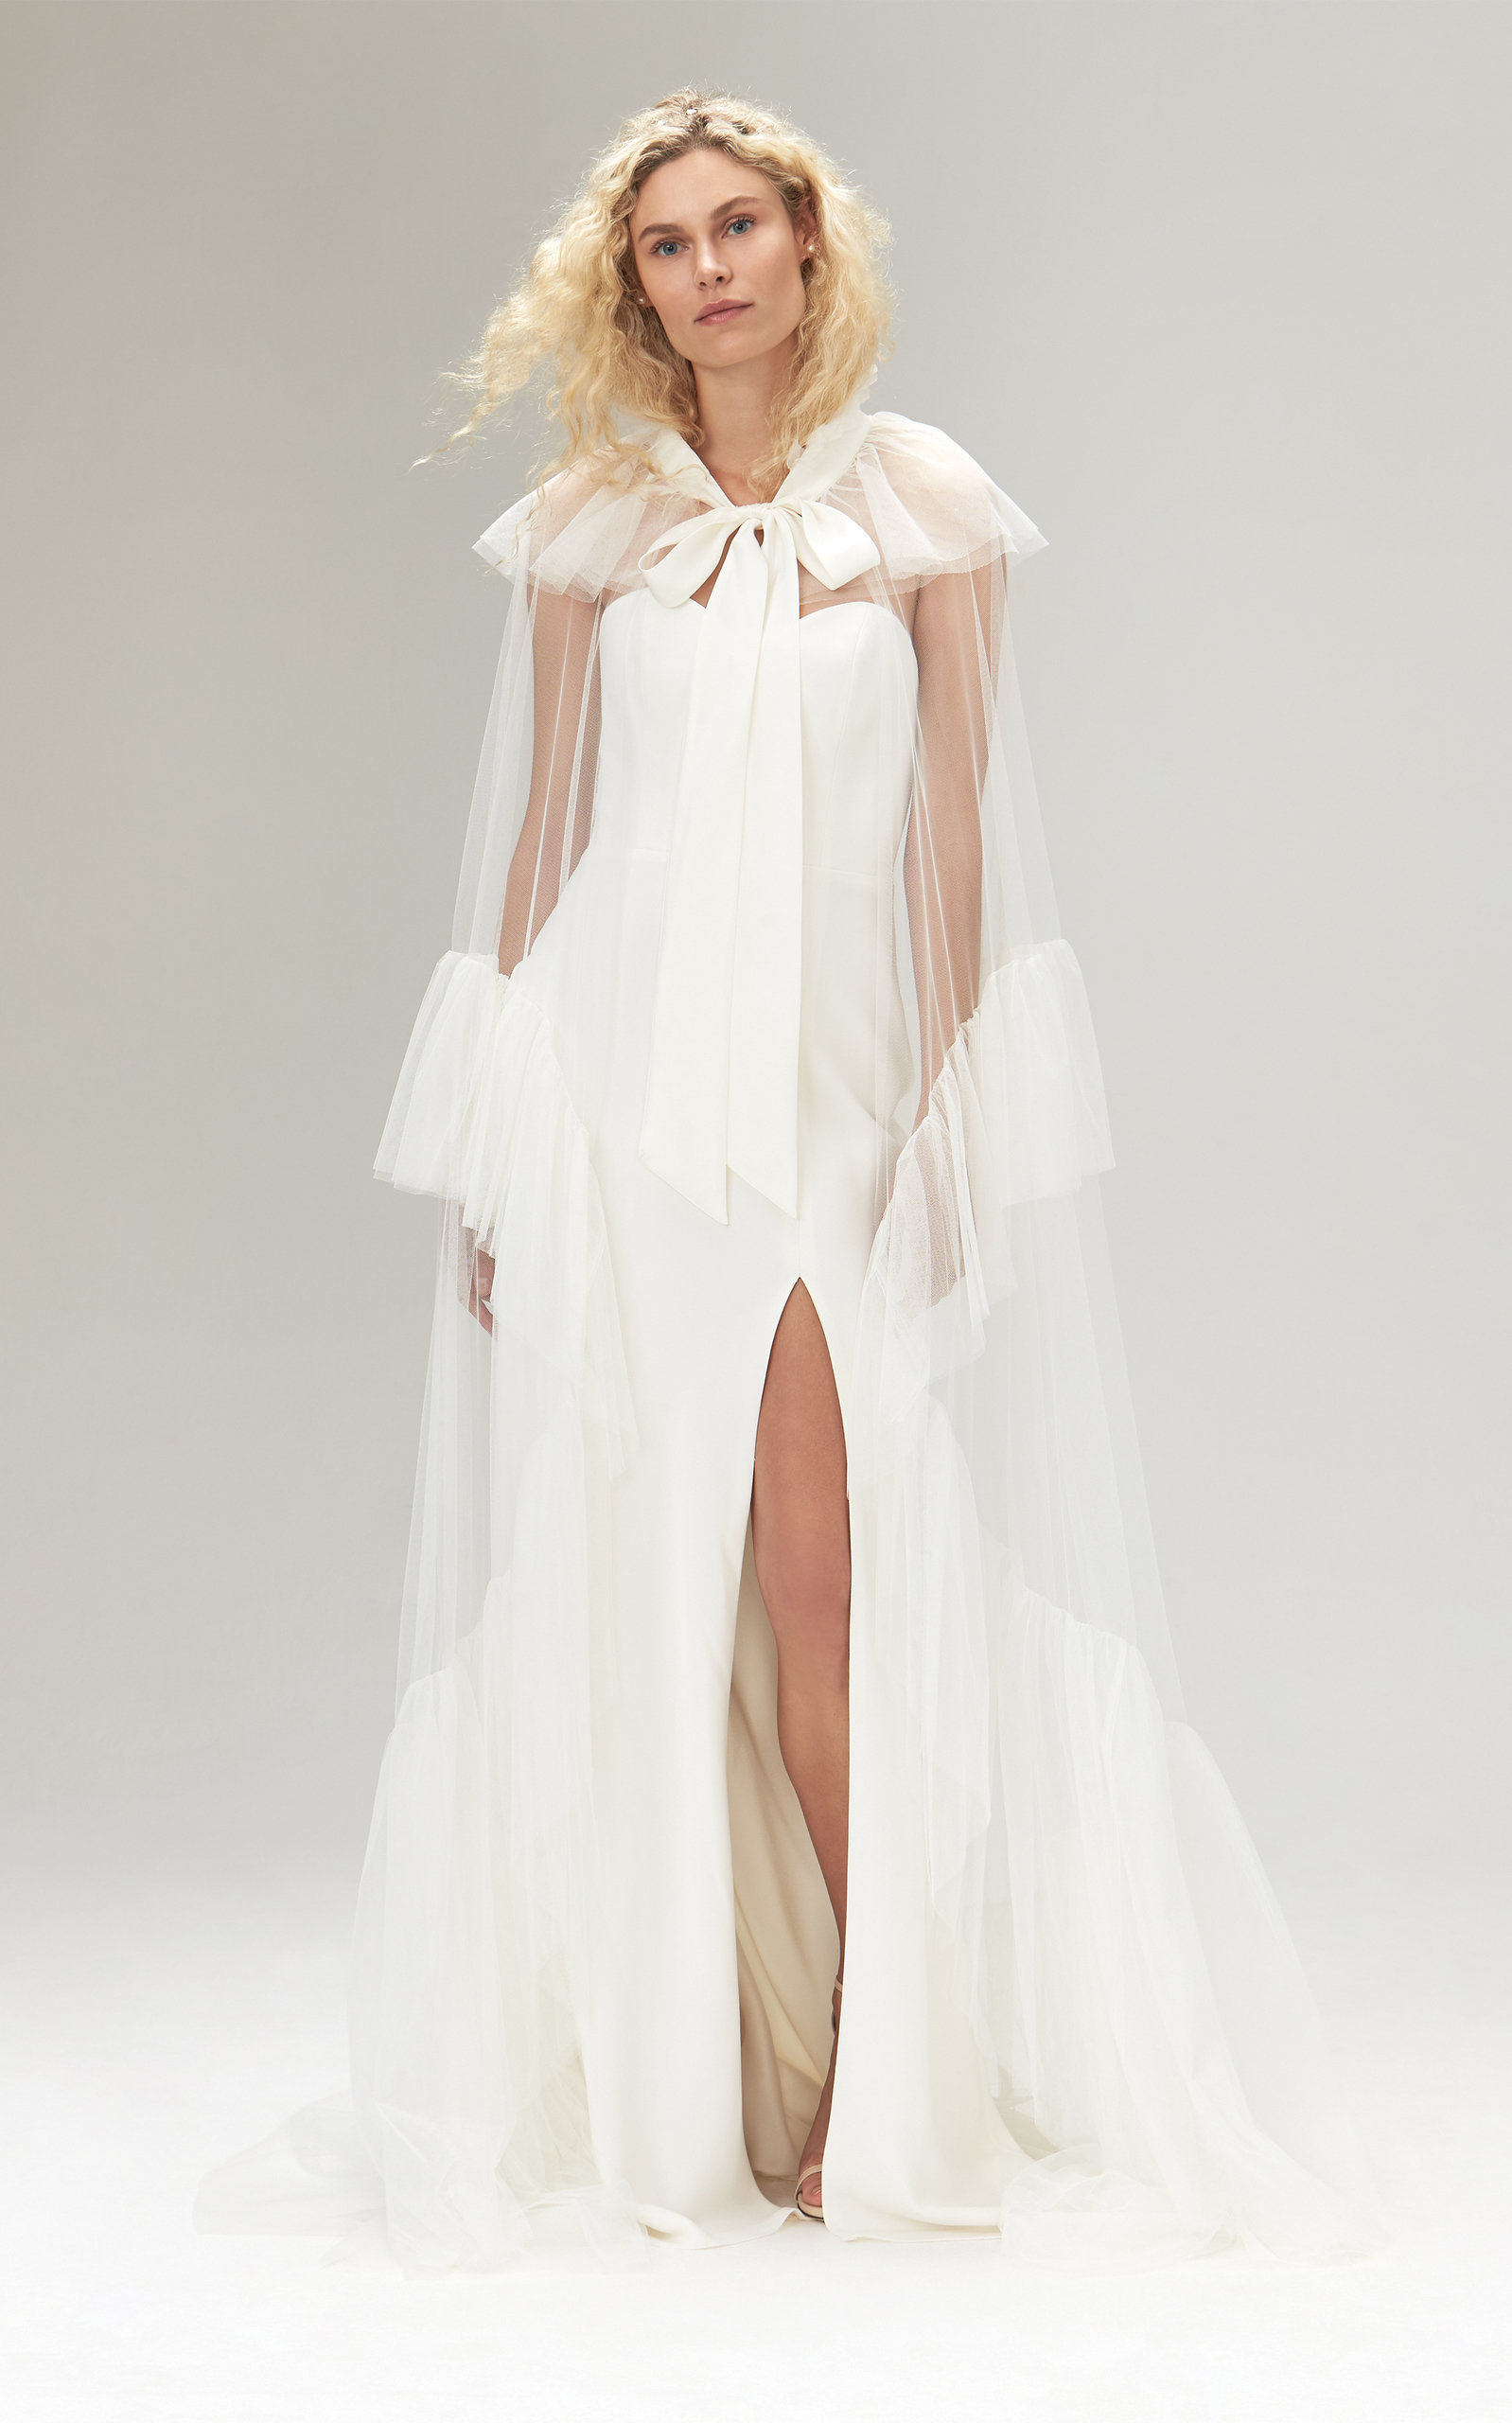 Savannah Miller - Gloria Dramatic Tulle Opera Cape